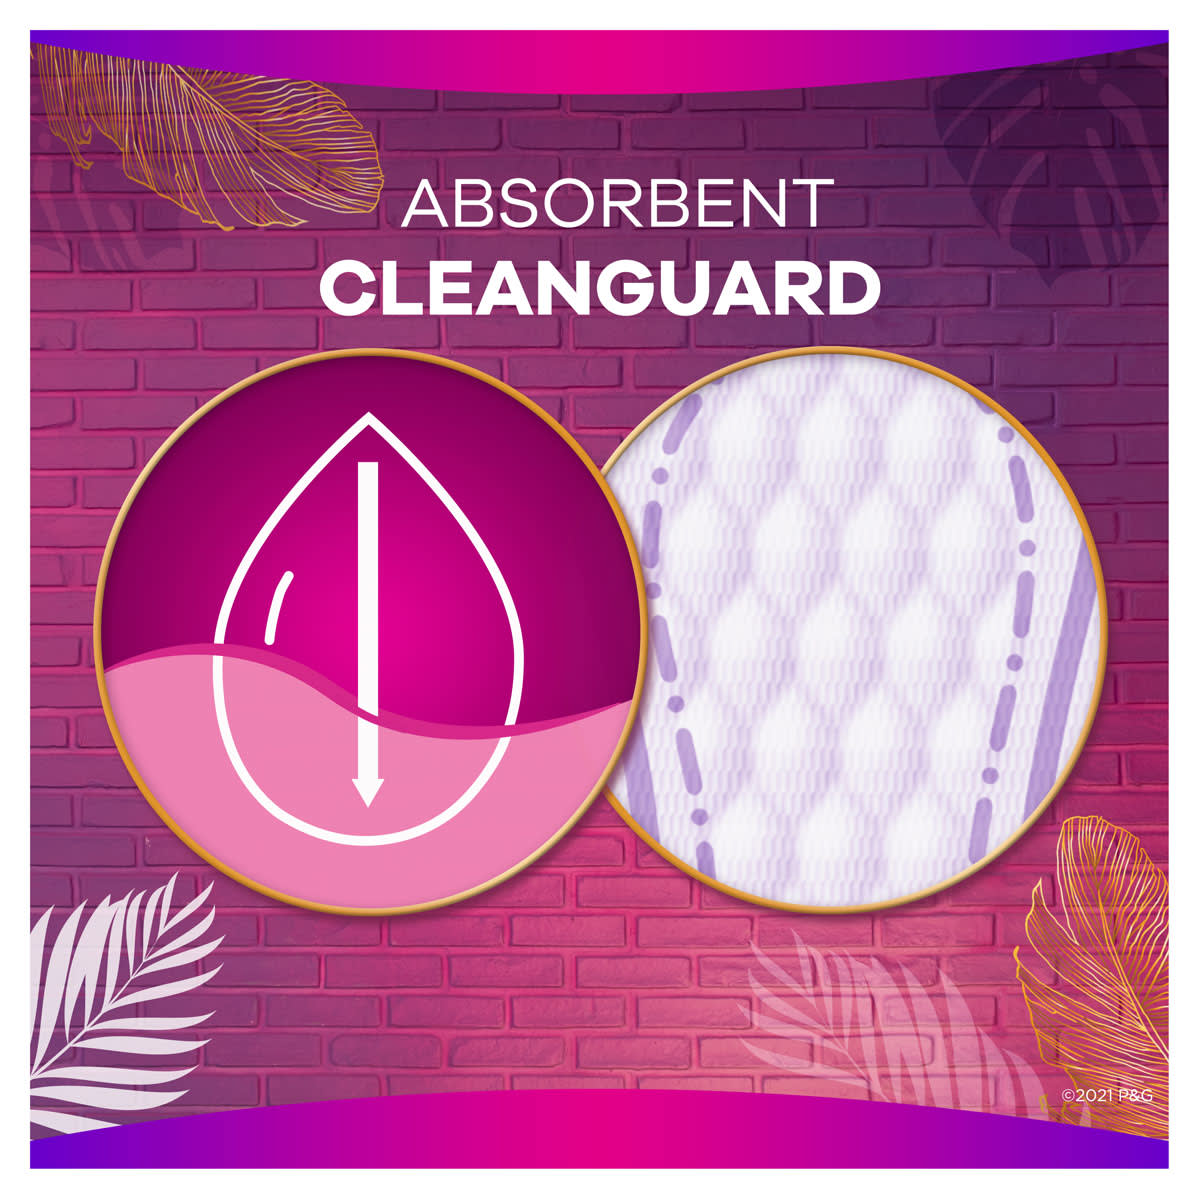 Always Radiant Multistyle Absorbent Cleanguard